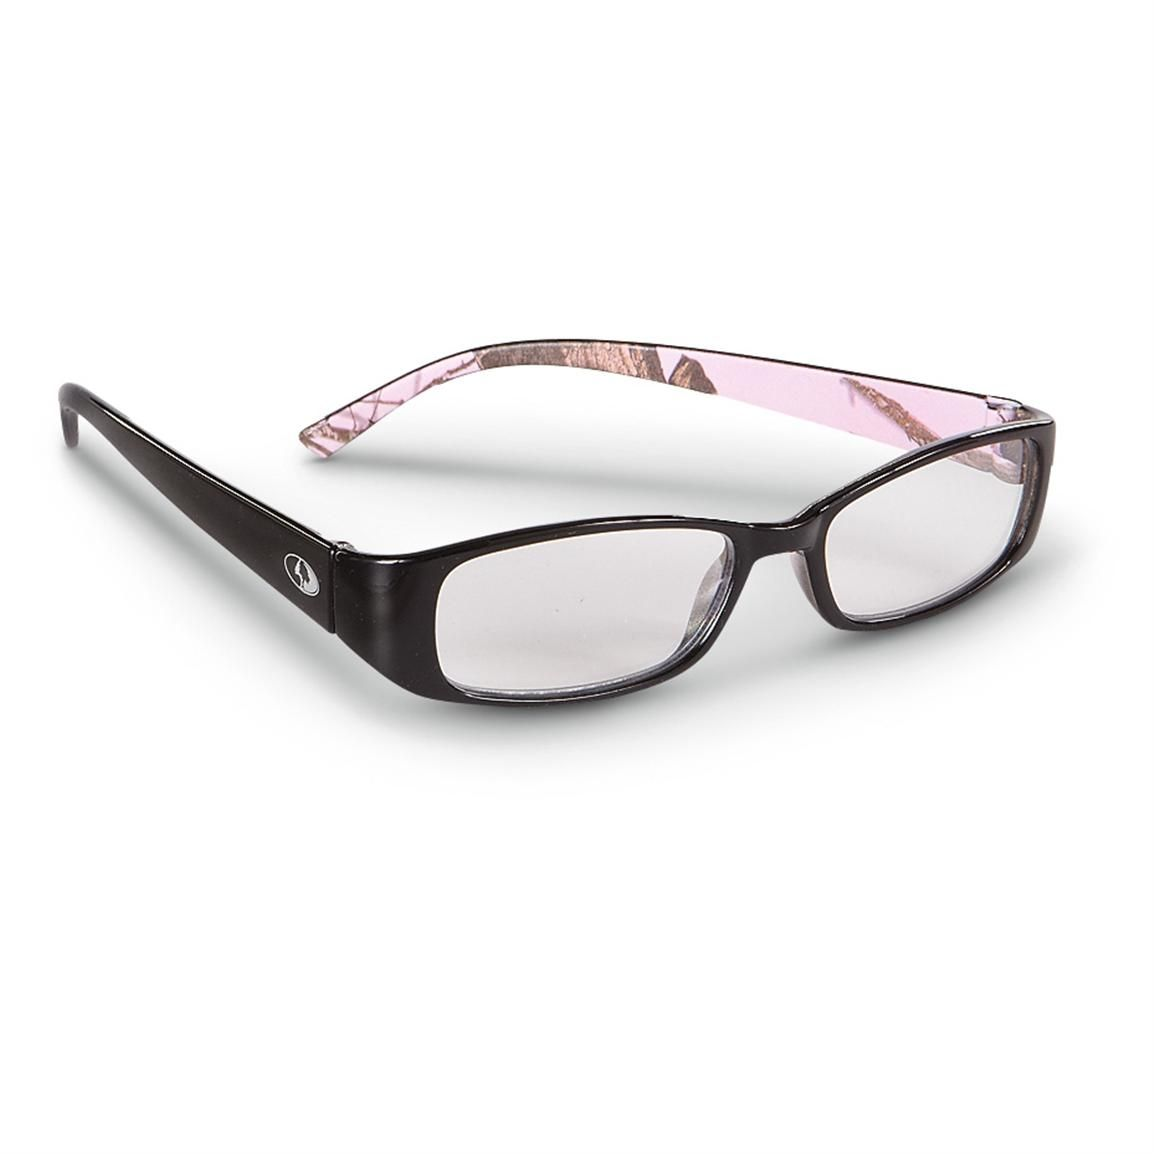 sportsmans guide has your womens mossy oak readers glossy black pink camo available at a great price in our sunglasses eyewear collection